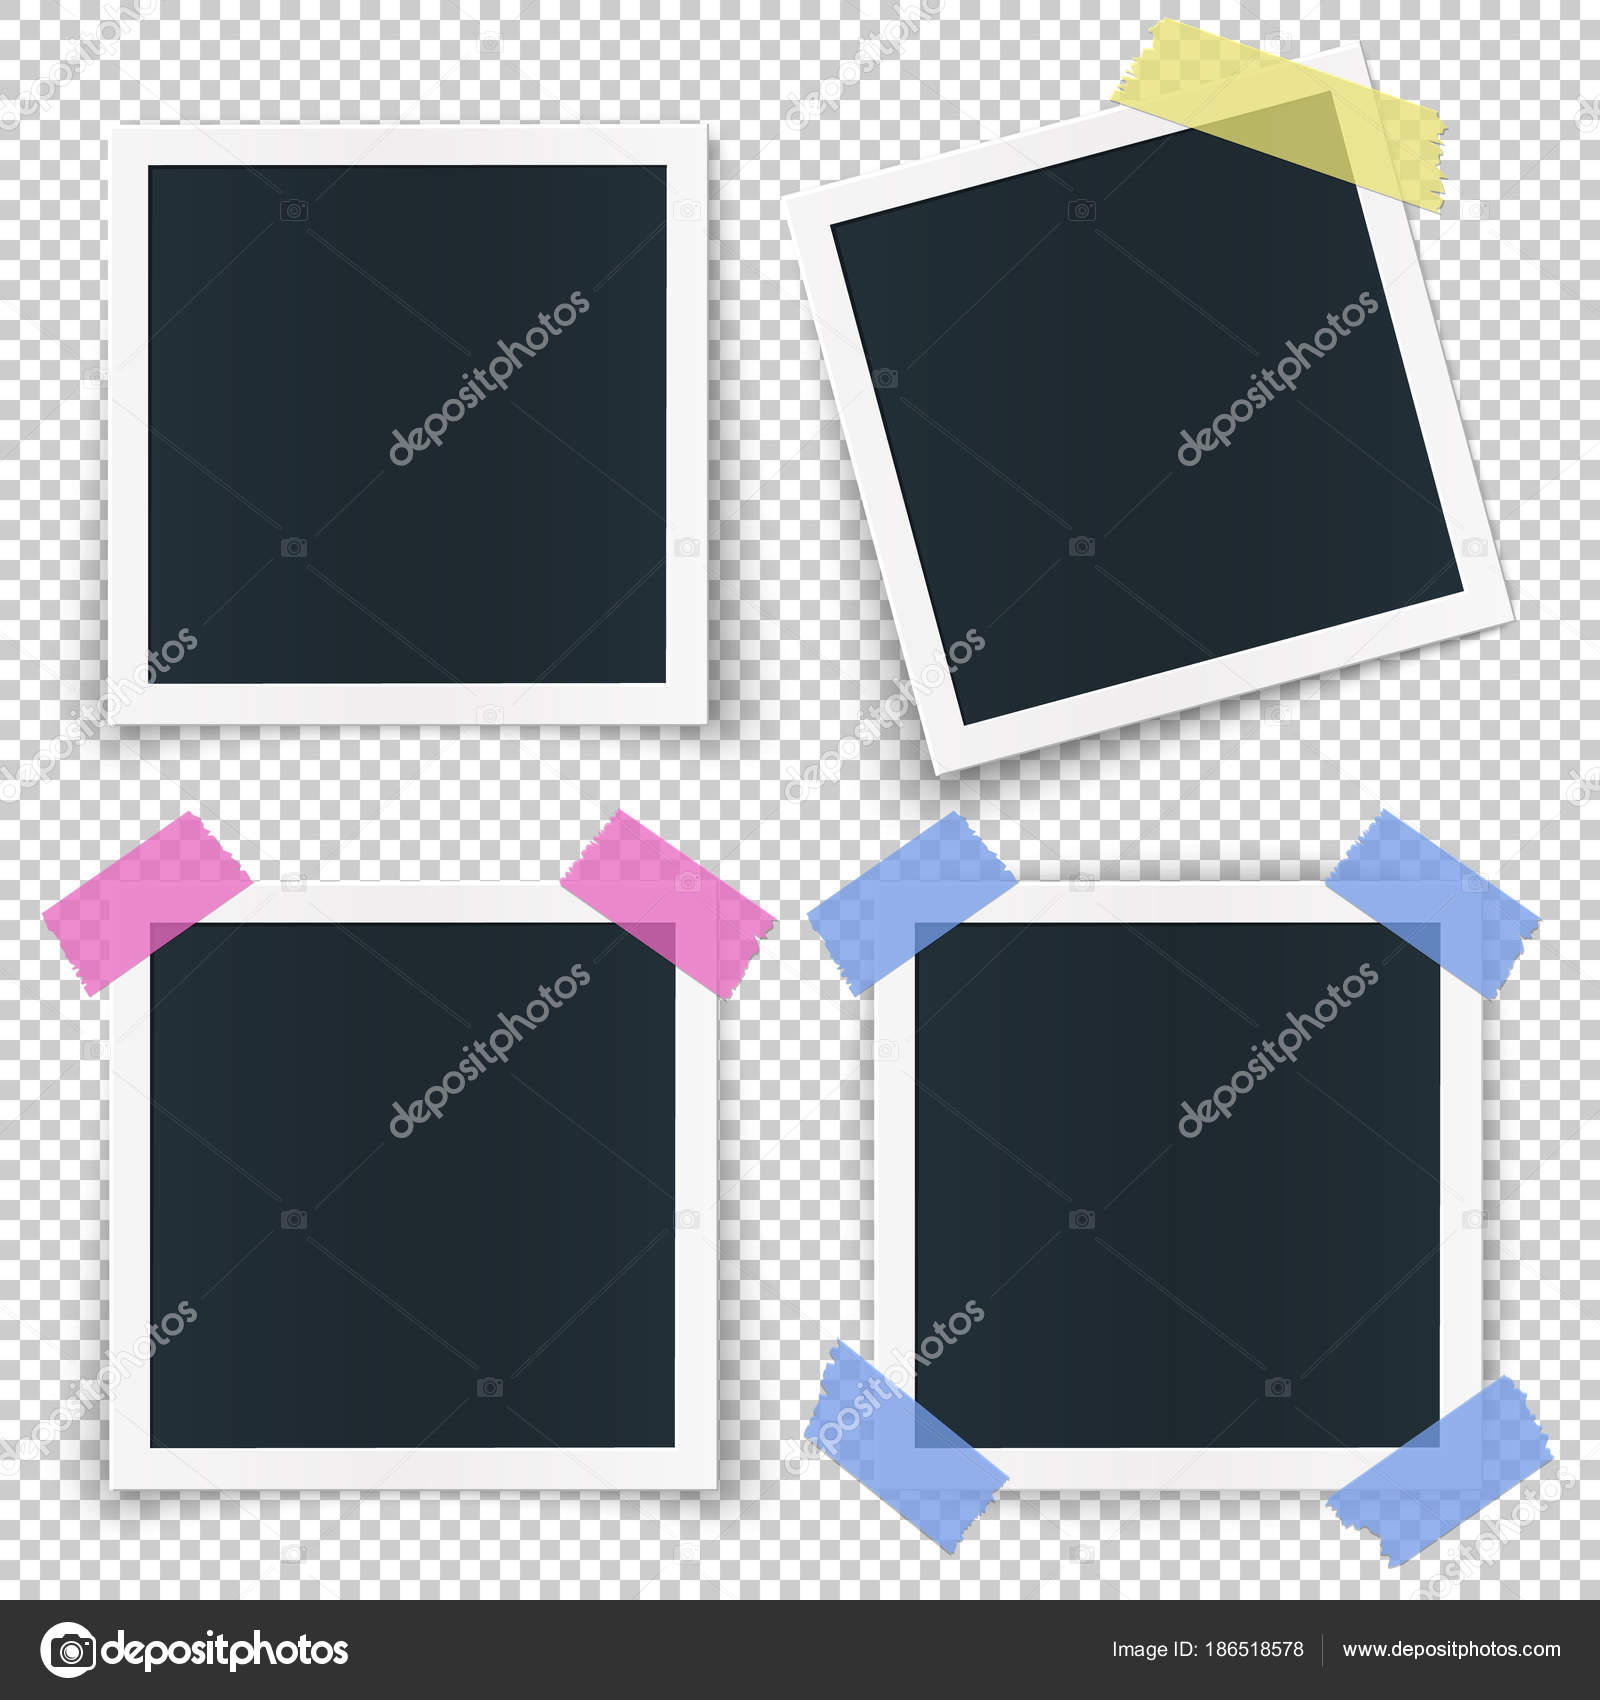 Set Of 4 Photo Frames Stickied With Colored Transparent Tape Pieces